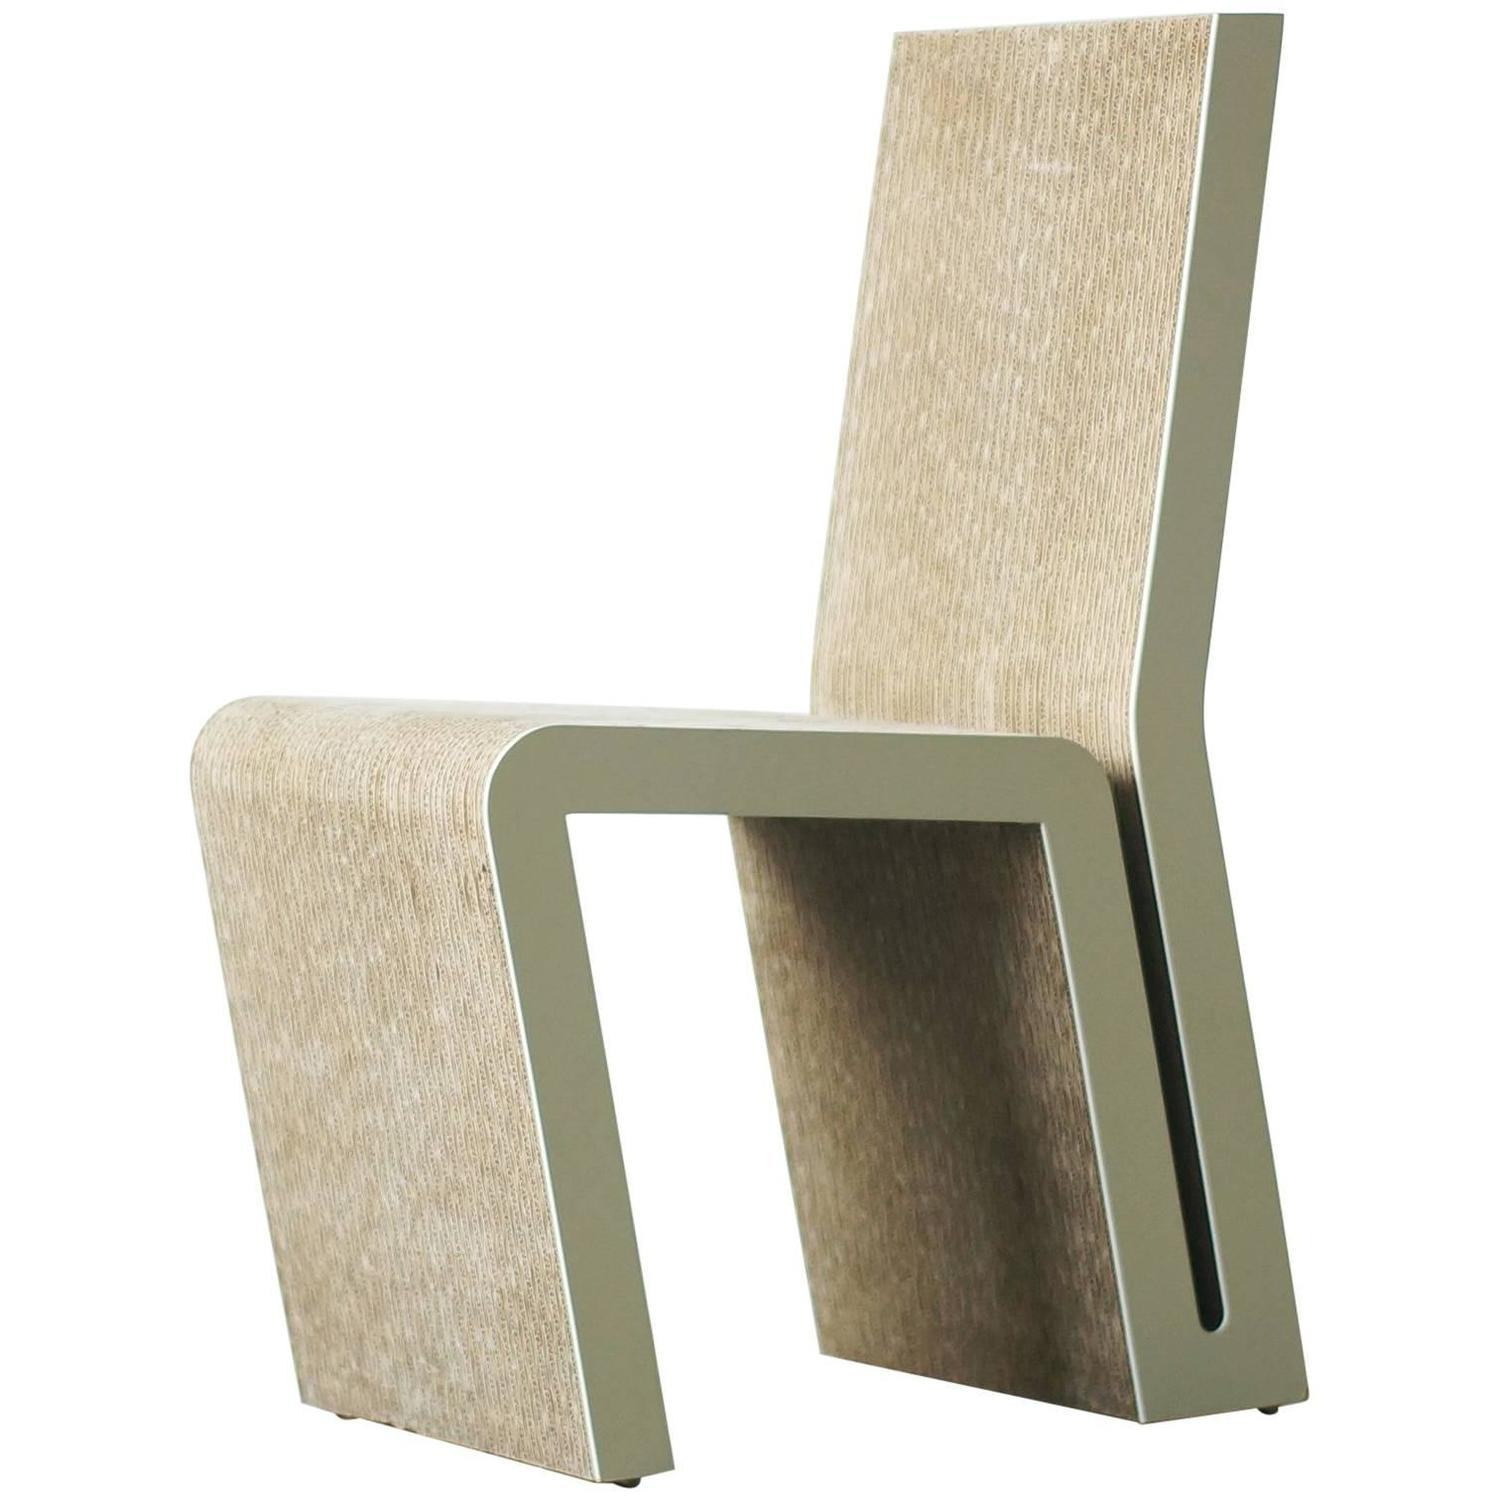 frank gehry cardboard chairs predator hunting easy edges side chair by for sale at 1stdibs vitra